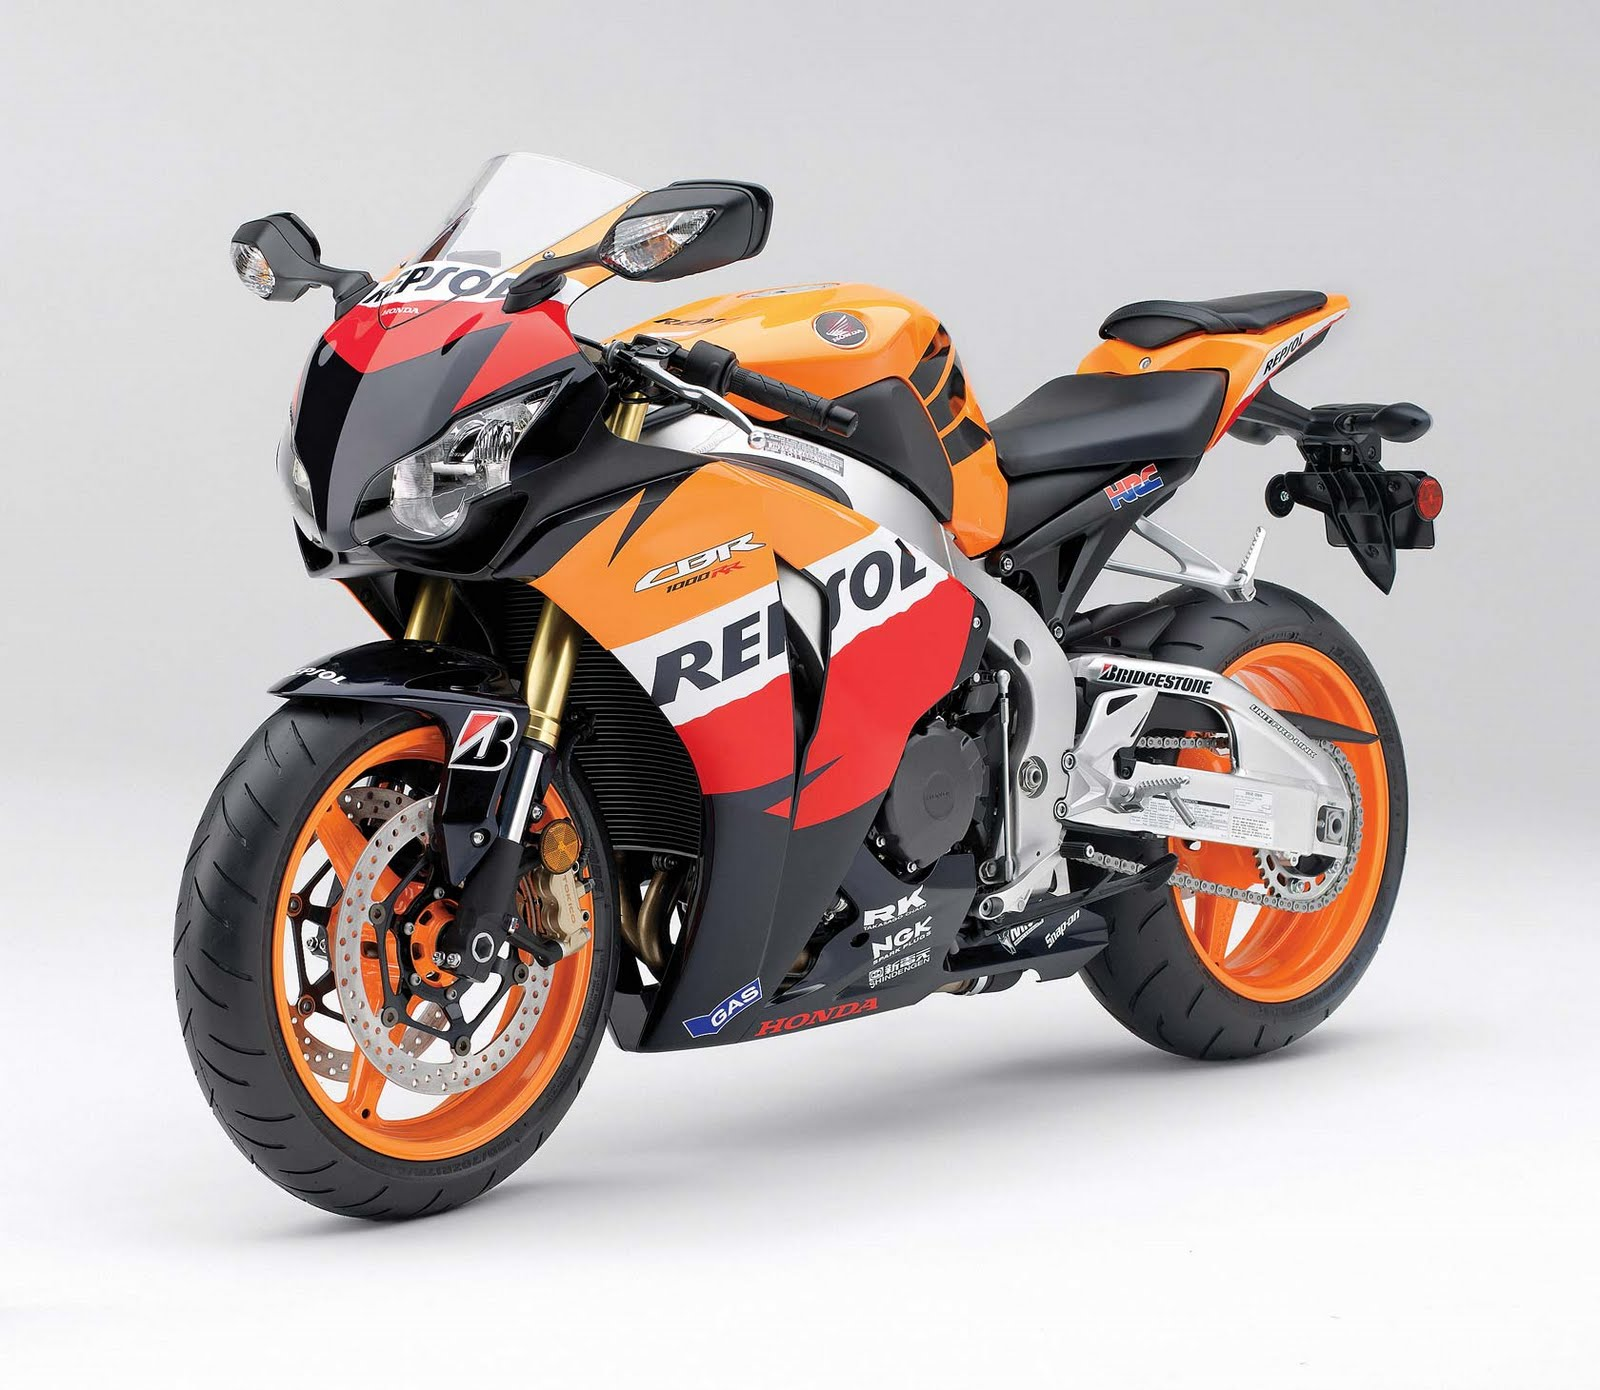 Wallpaper Repsol Honda Cbr New Hd Wallon